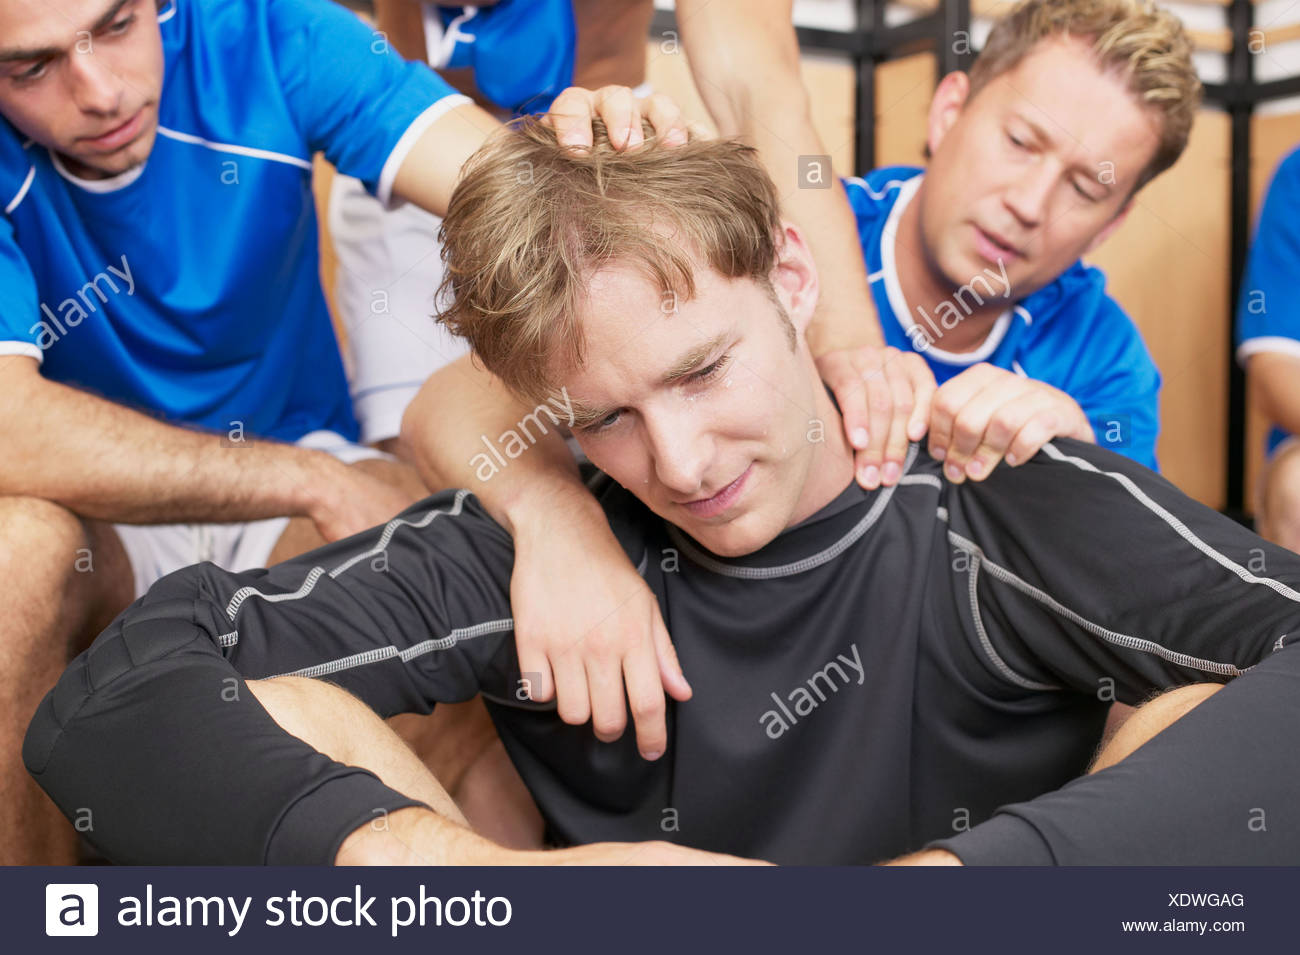 Footballers consoling team mate - Stock Image